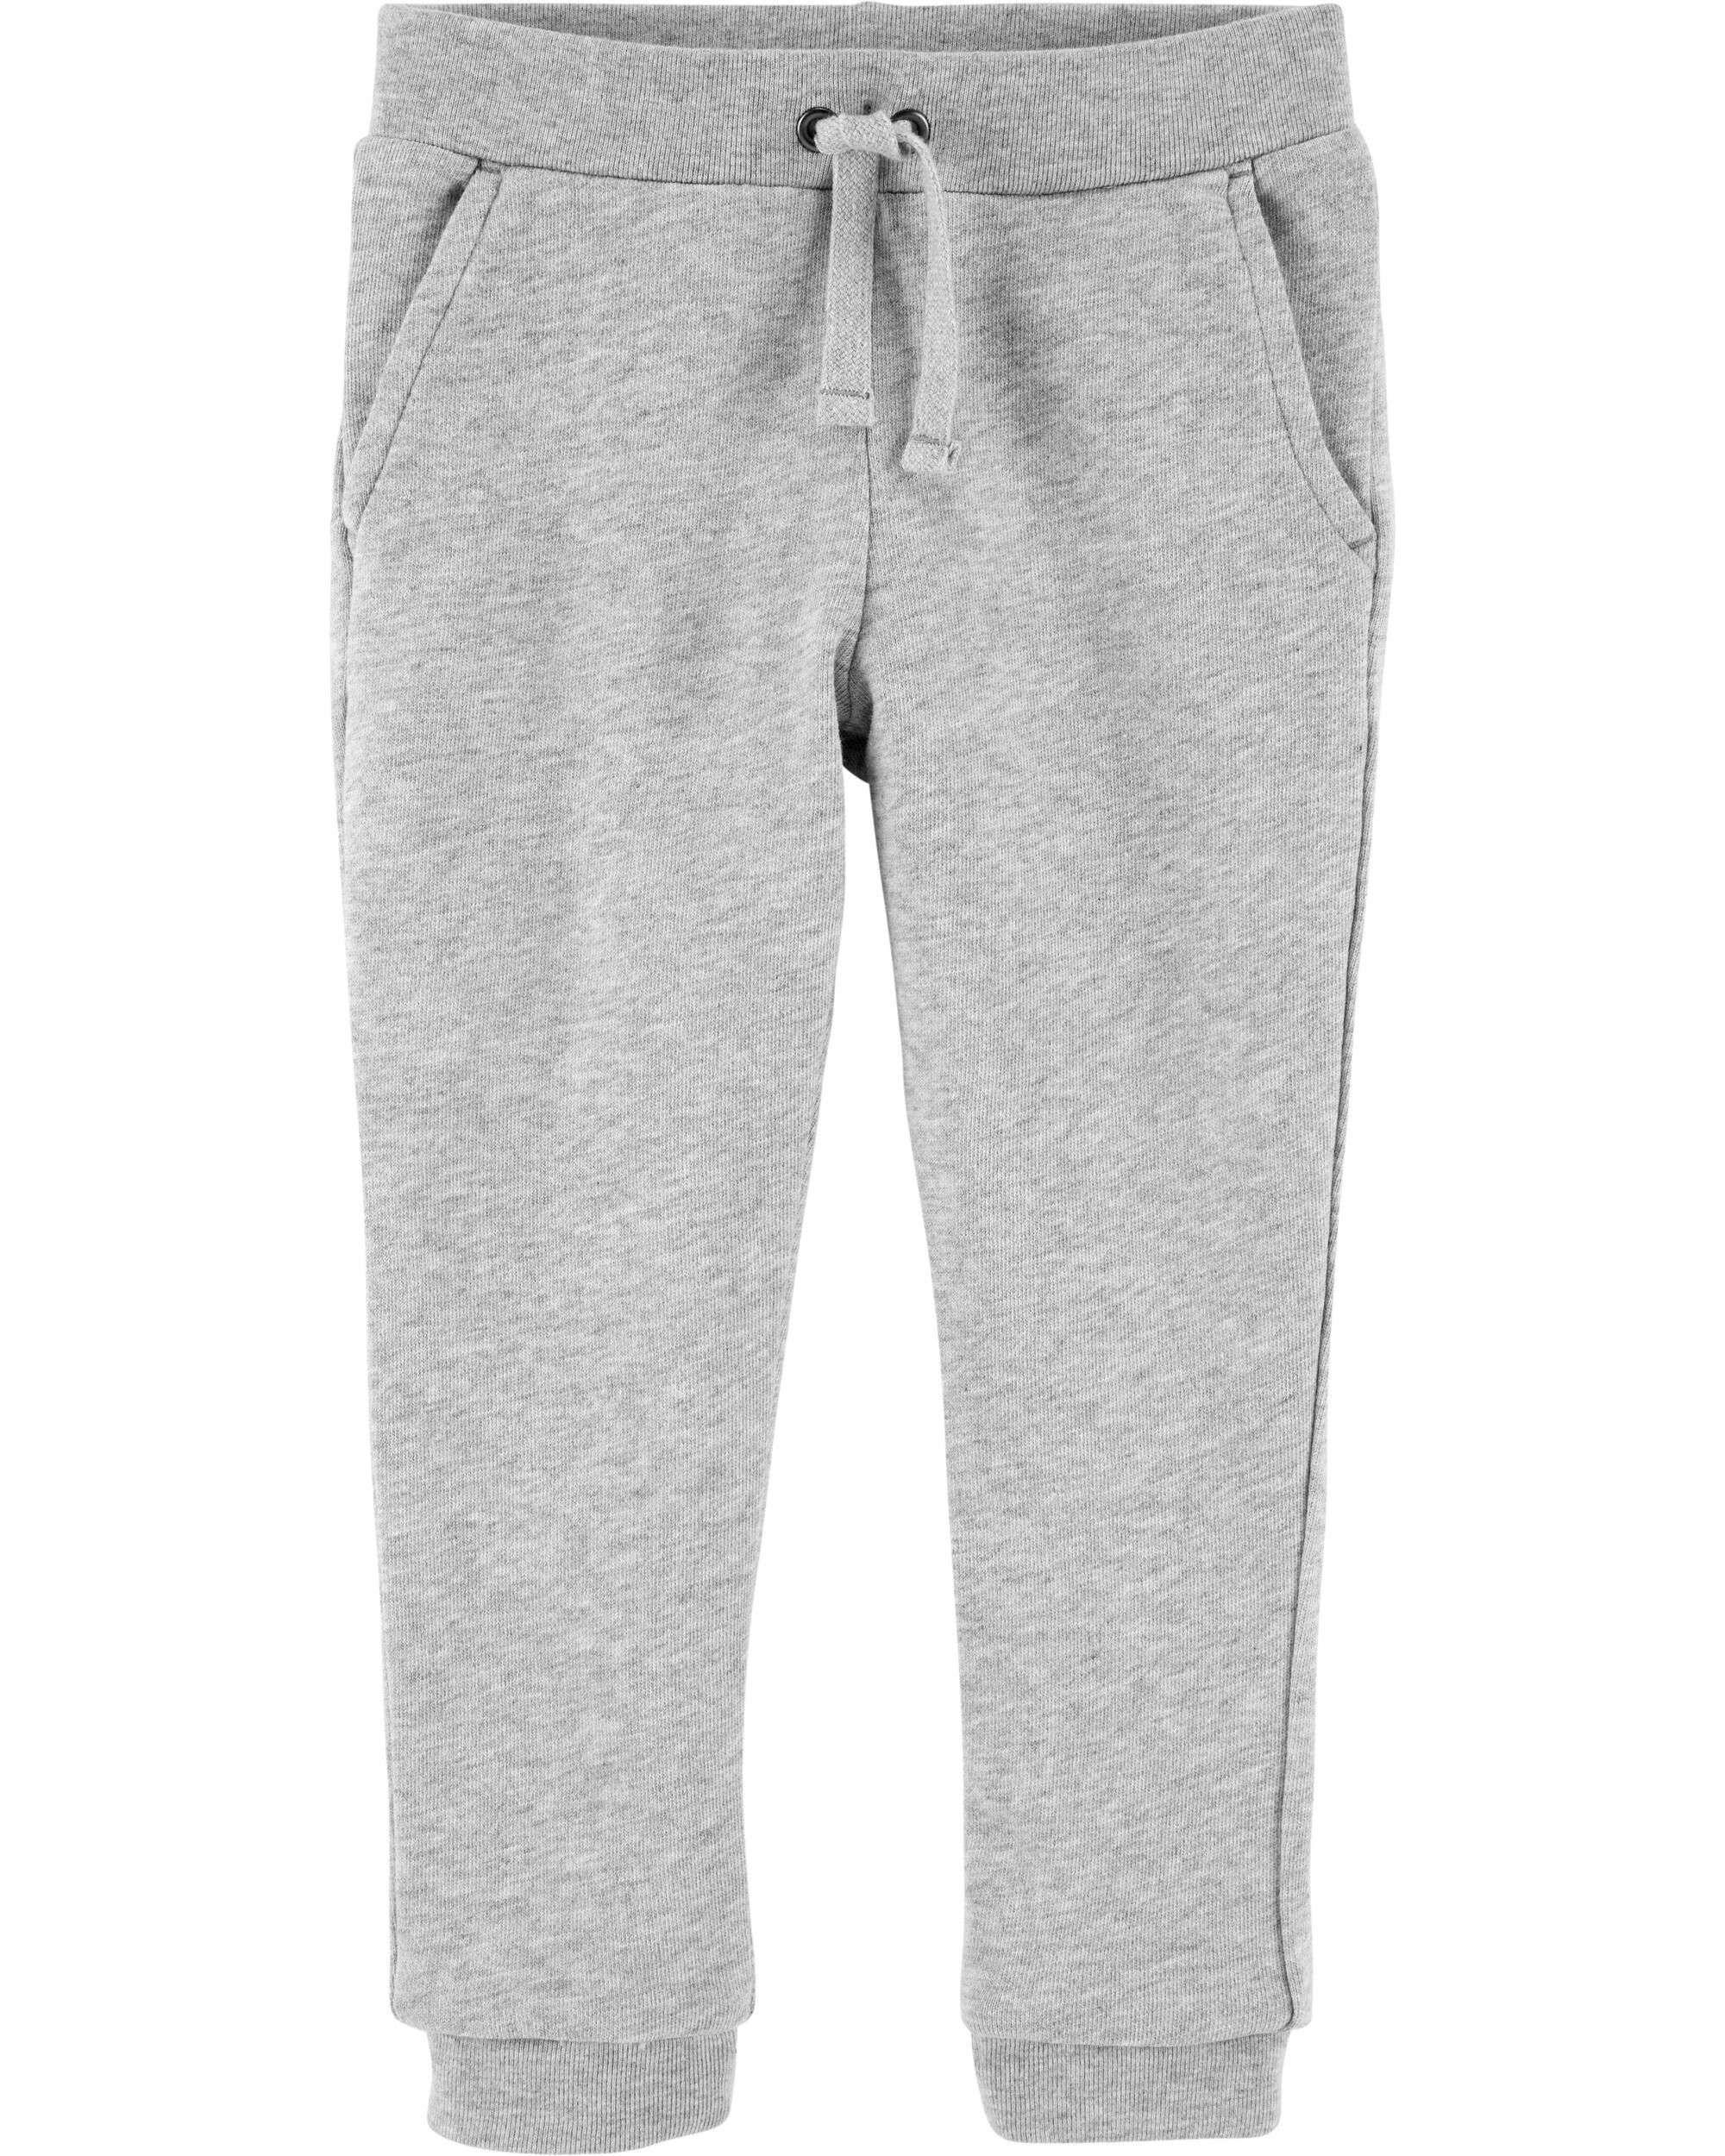 *DOORBUSTER*Pull-On French Terry Joggers